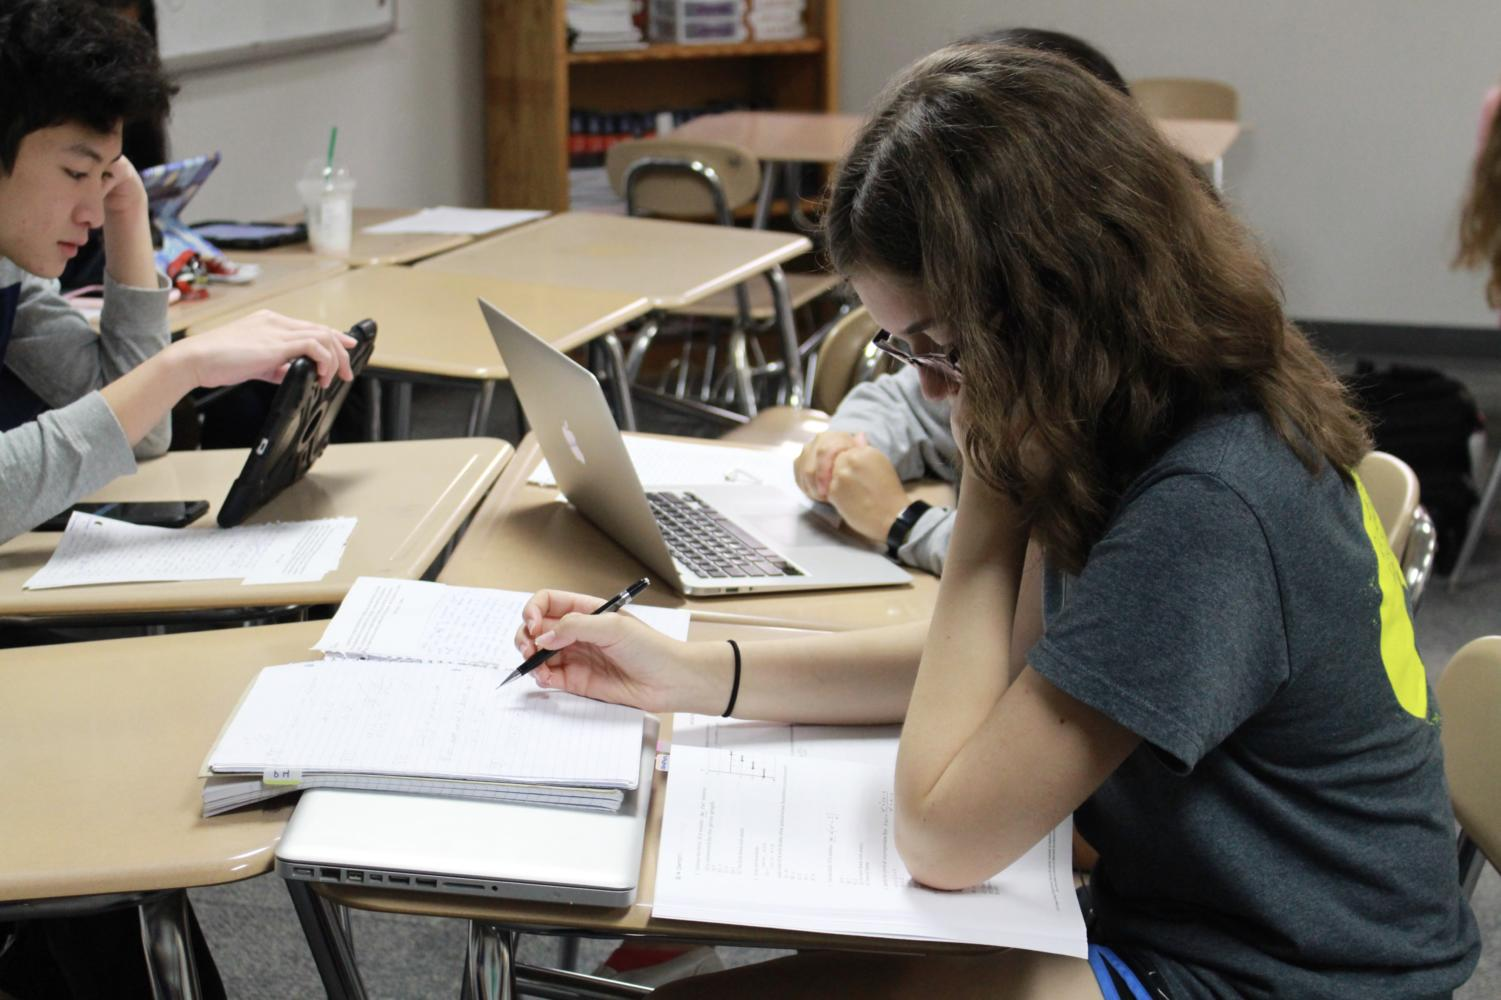 Coppell High School junior Emilie Sangerhausen prepares for her AP exam in Eligio Mares' fifth period AP Spanish Language and Culture class on Monday. Students are preparing by studying for the upcoming exams tomorrow morning.